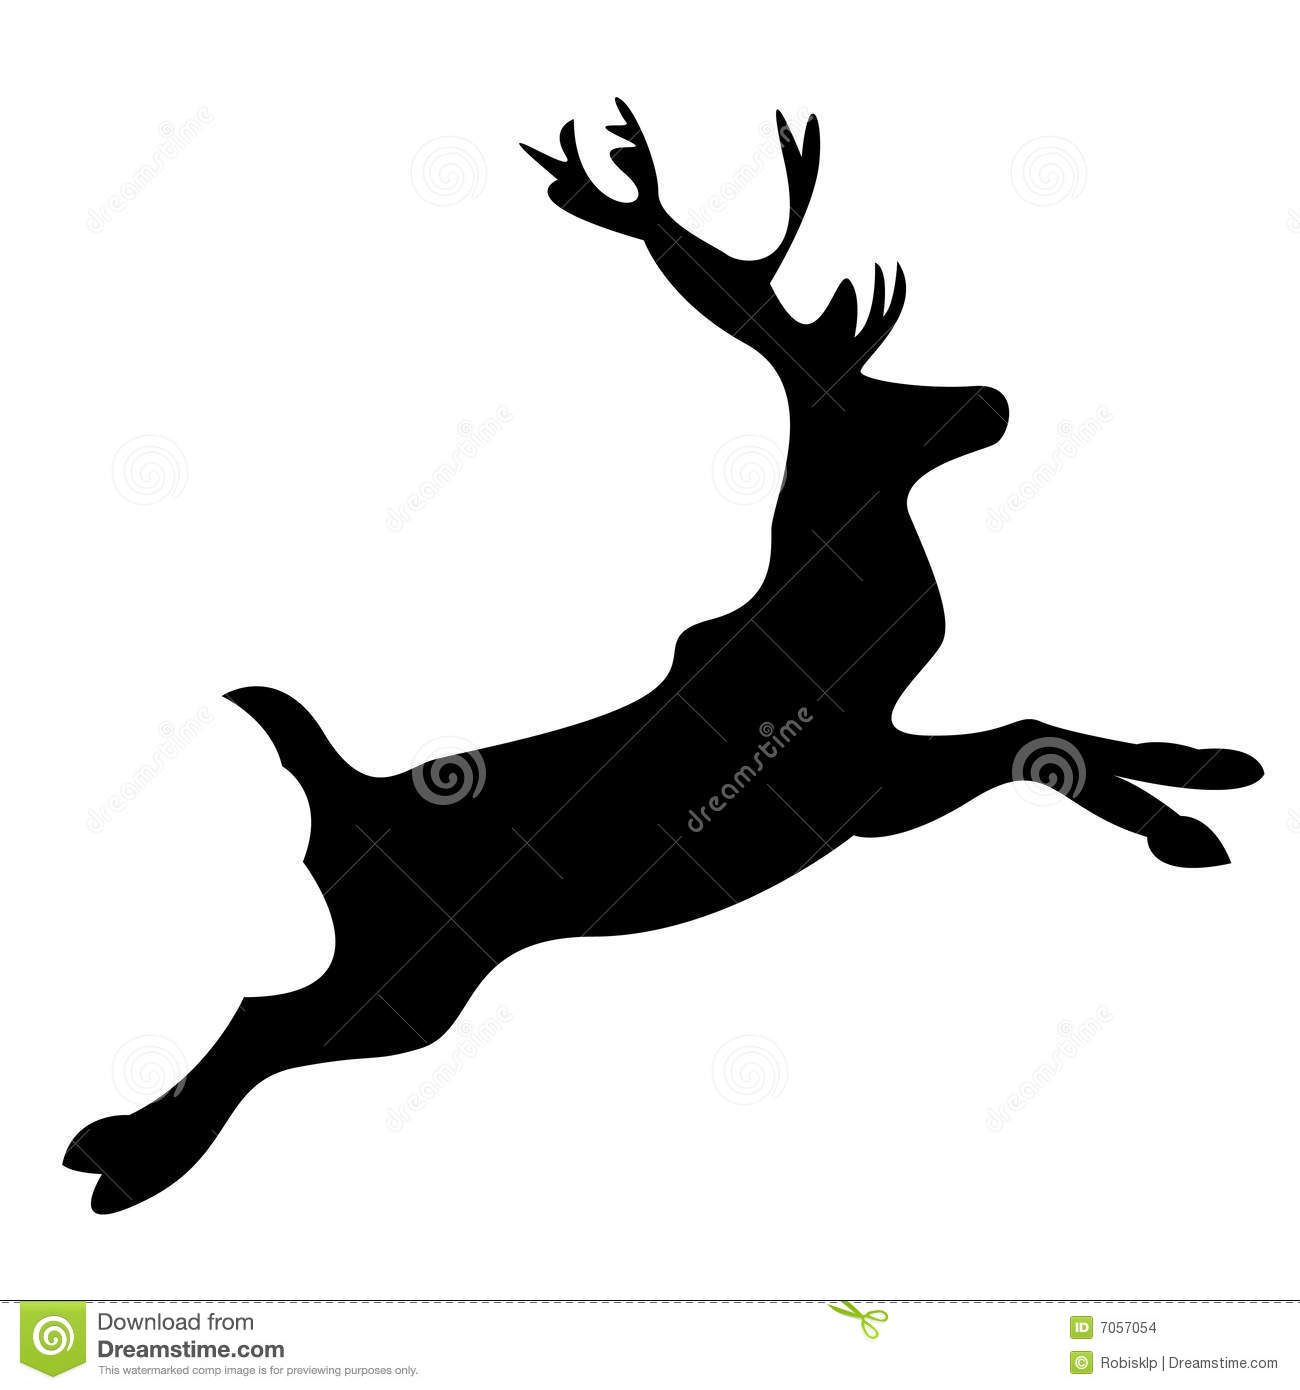 More similar stock images of ` Reindeer silhouette `